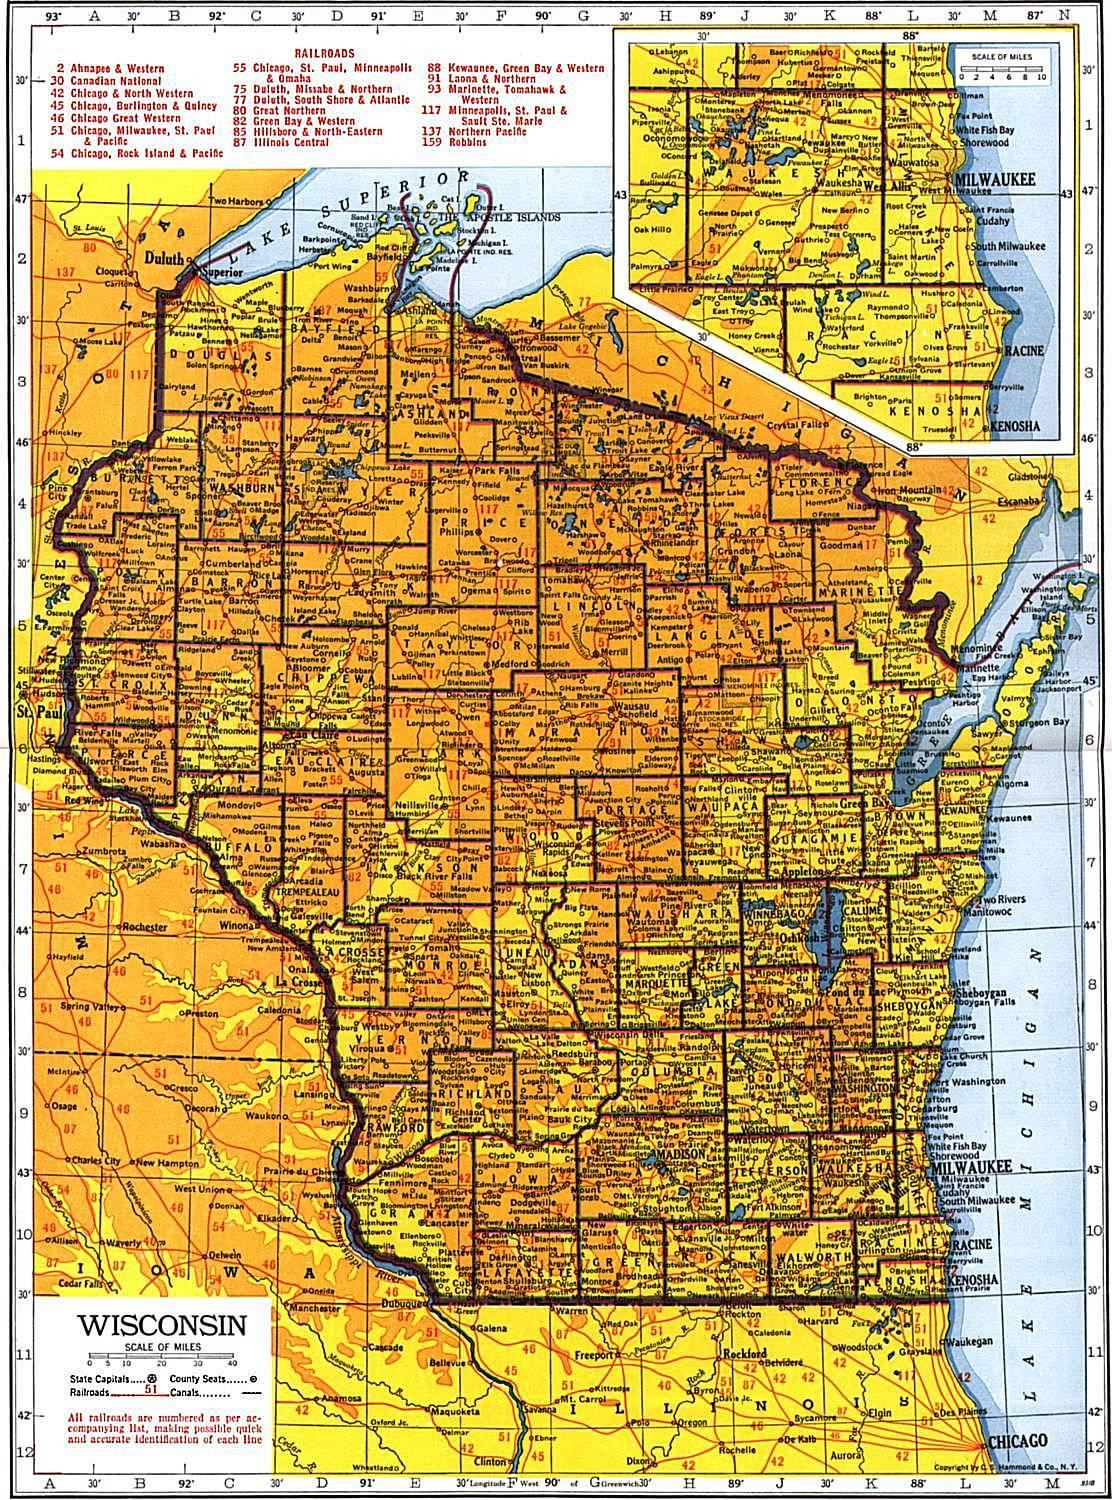 Wisconsin-Map-37 Detailed Map Of Wisconsin on map of southern wisconsin, us highway map of wisconsin, languages of wisconsin, detailed northwest wisconsin map, demographics of wisconsin, atlas of wisconsin, comprehensive map of wisconsin, full map of wisconsin, blood center of wisconsin, large map of wisconsin, a map of wisconsin, city of wisconsin, google maps of wisconsin, physical map of wisconsin, towns of wisconsin, elevation of wisconsin, easy map of wisconsin, funny map of wisconsin, united states of wisconsin,